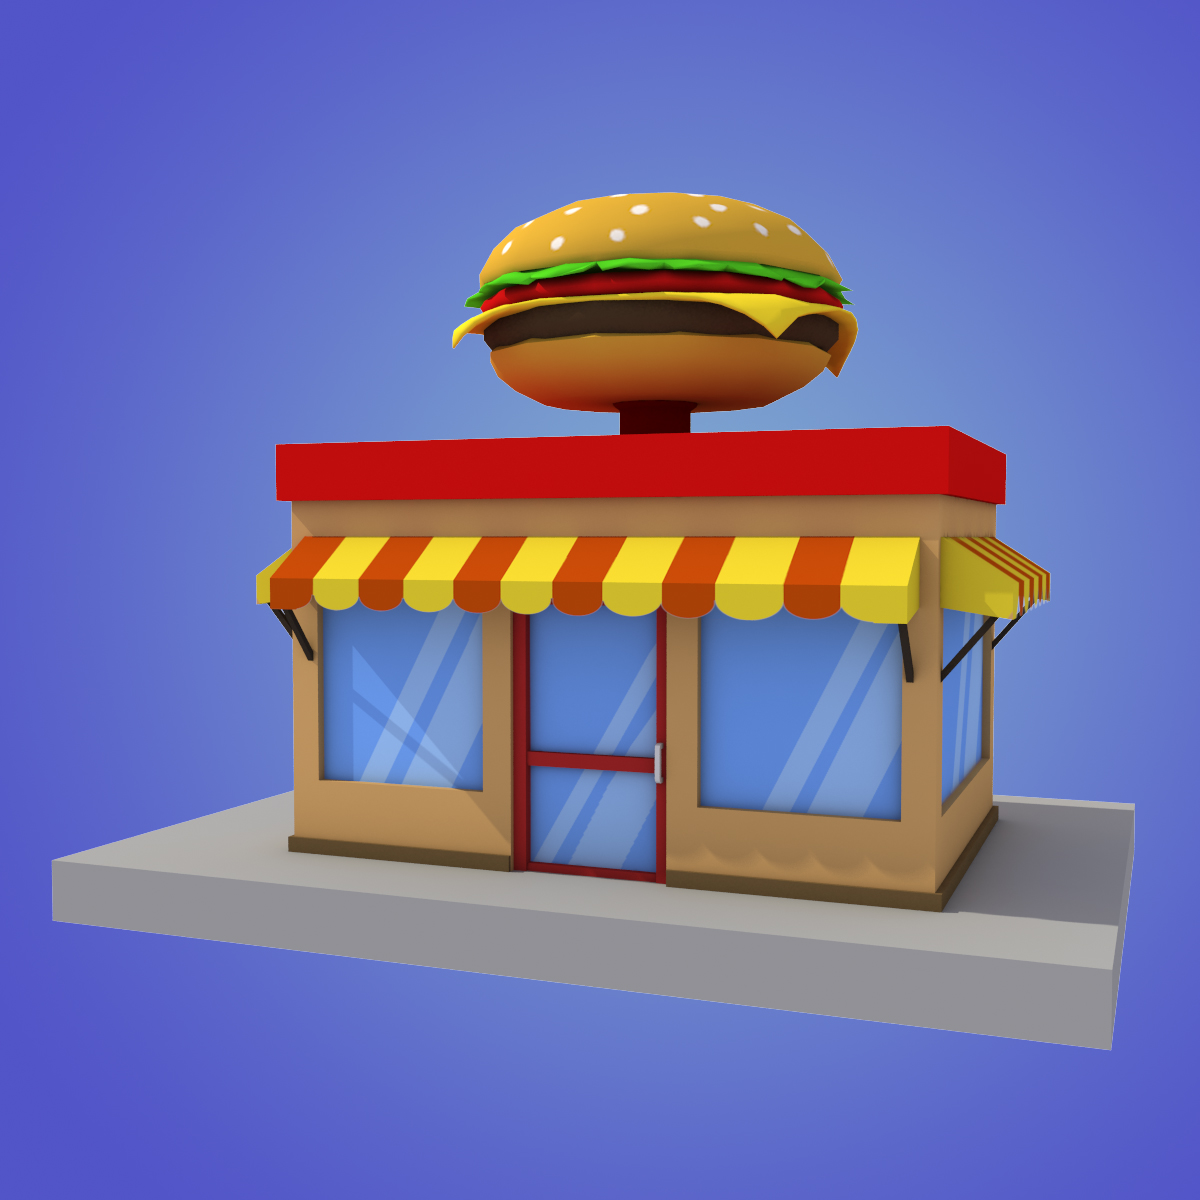 Building clipart burger. Cartoon house low poly